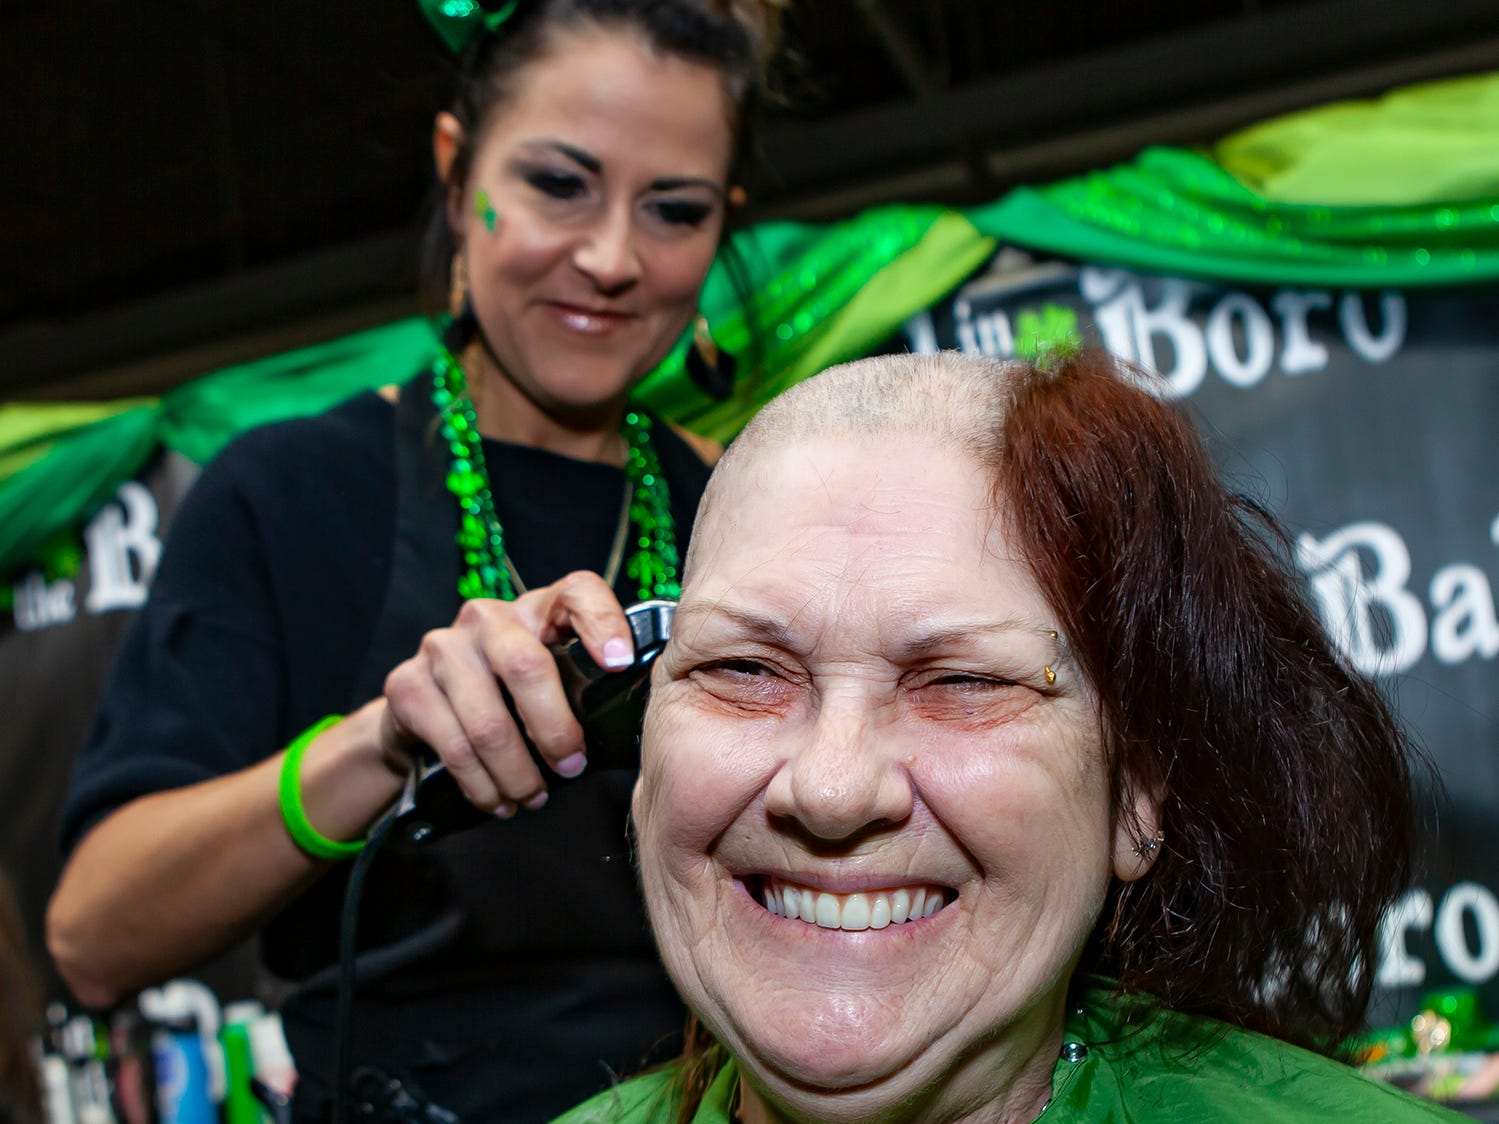 Linda Nerren, who is now fighting leukemia, was among those who shaved their head at the ninth annual Bald in the Boro fundraiser for the St. Baldrick's Foundation. The event was held Friday, March 15, 2019 at Lanes, Trains and Automobiles in Murfreesboro.